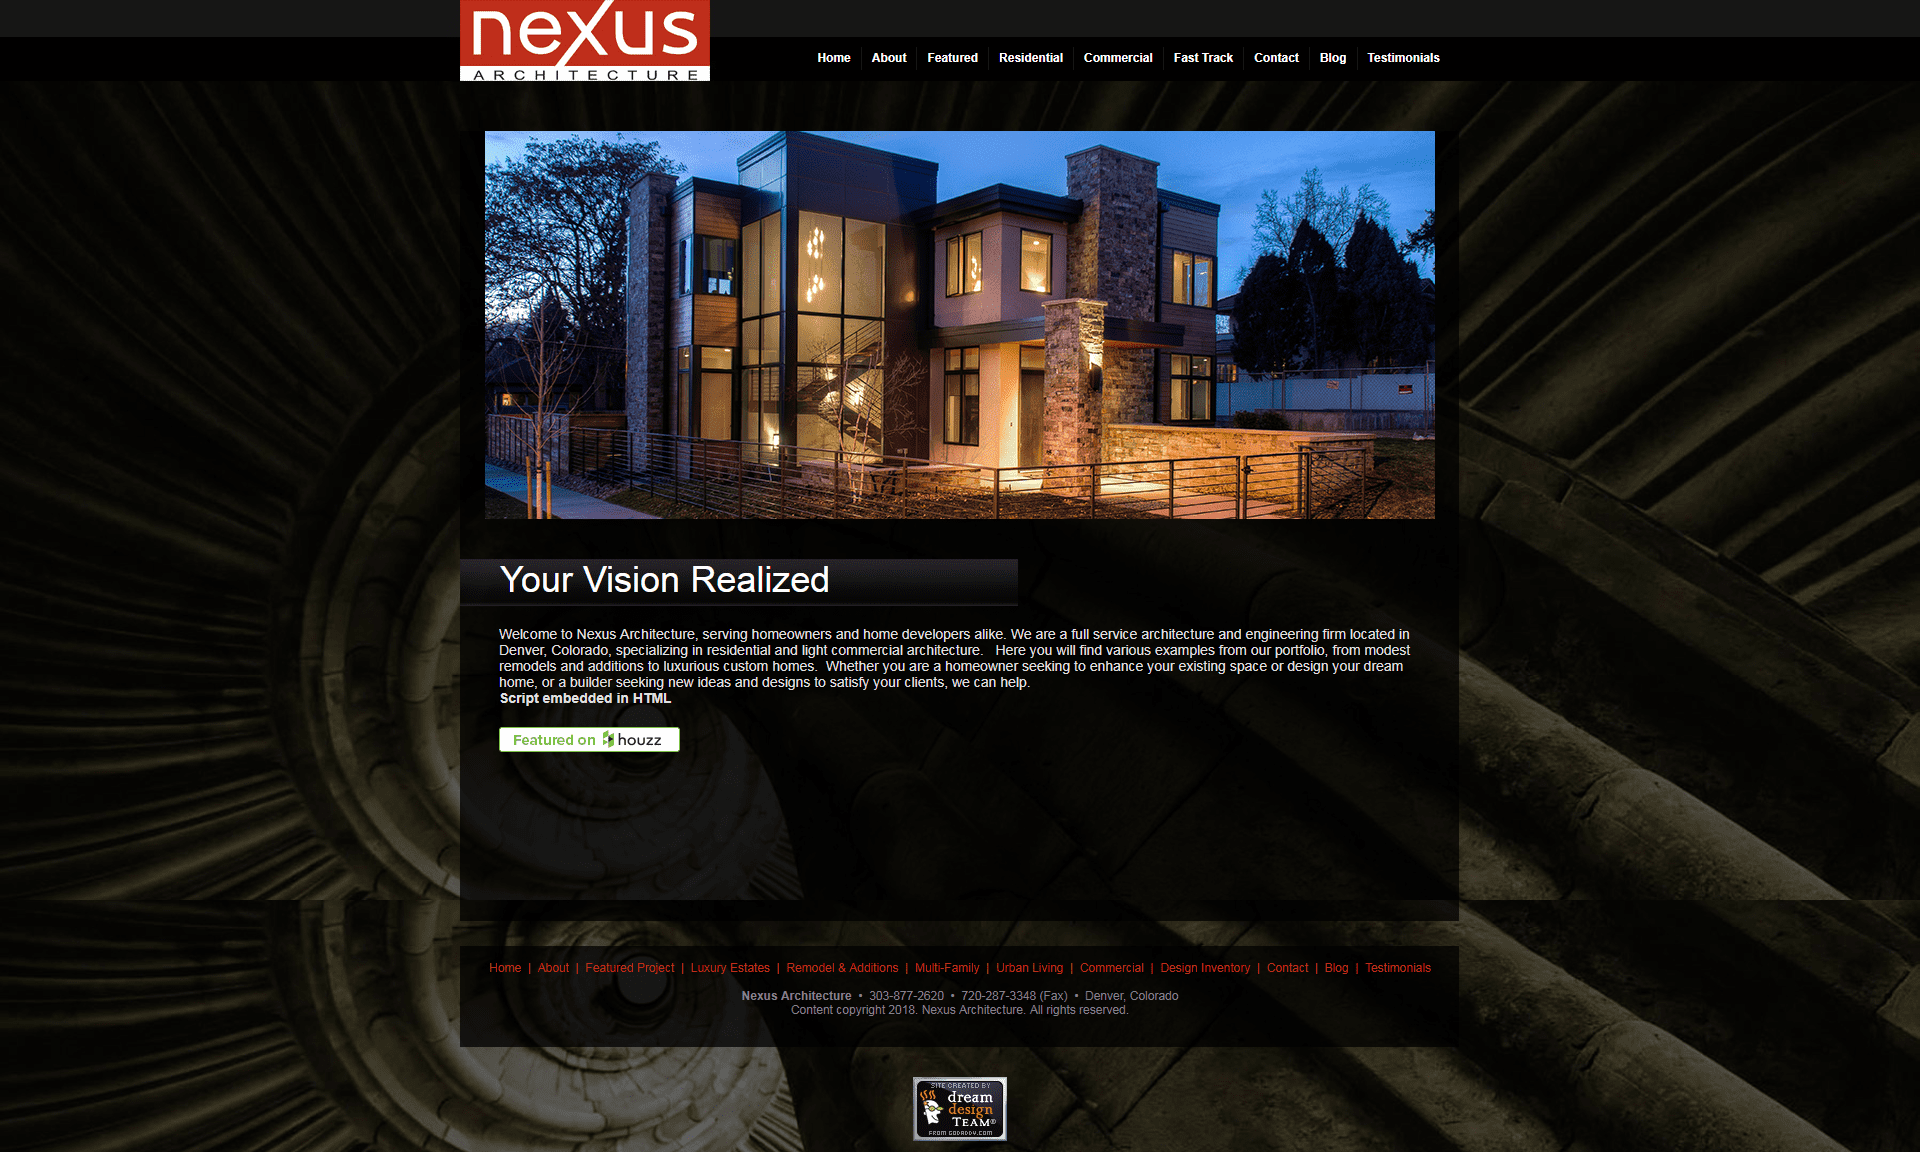 nexus - old site - v7